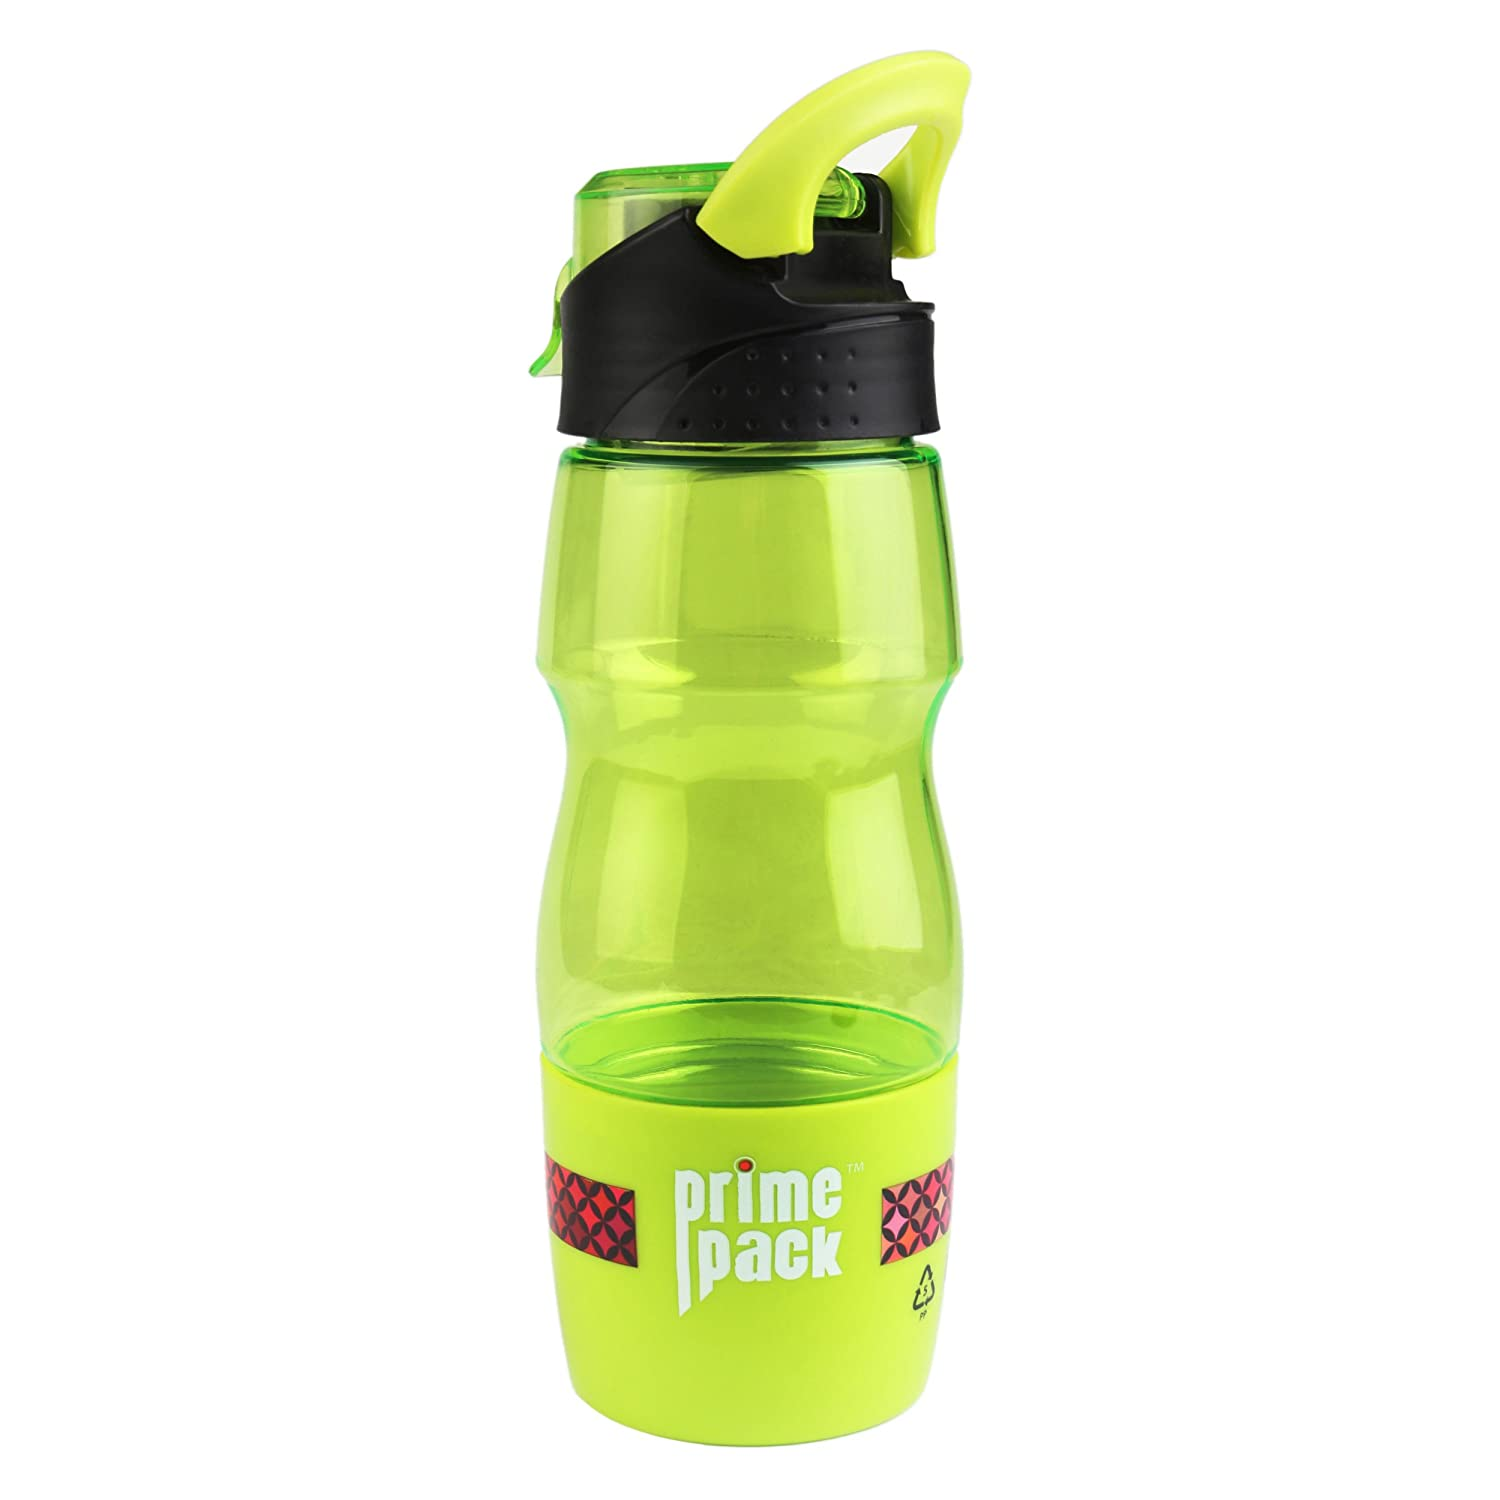 Durable Leak Proof Lid and Twist Off Cup BPA Free GRANDEGO Perfect Travel Bottles for Hiking Cycling Gym Outdoor Travel and Office PRIMEPACK 20oz Sports Water Bottle Camping